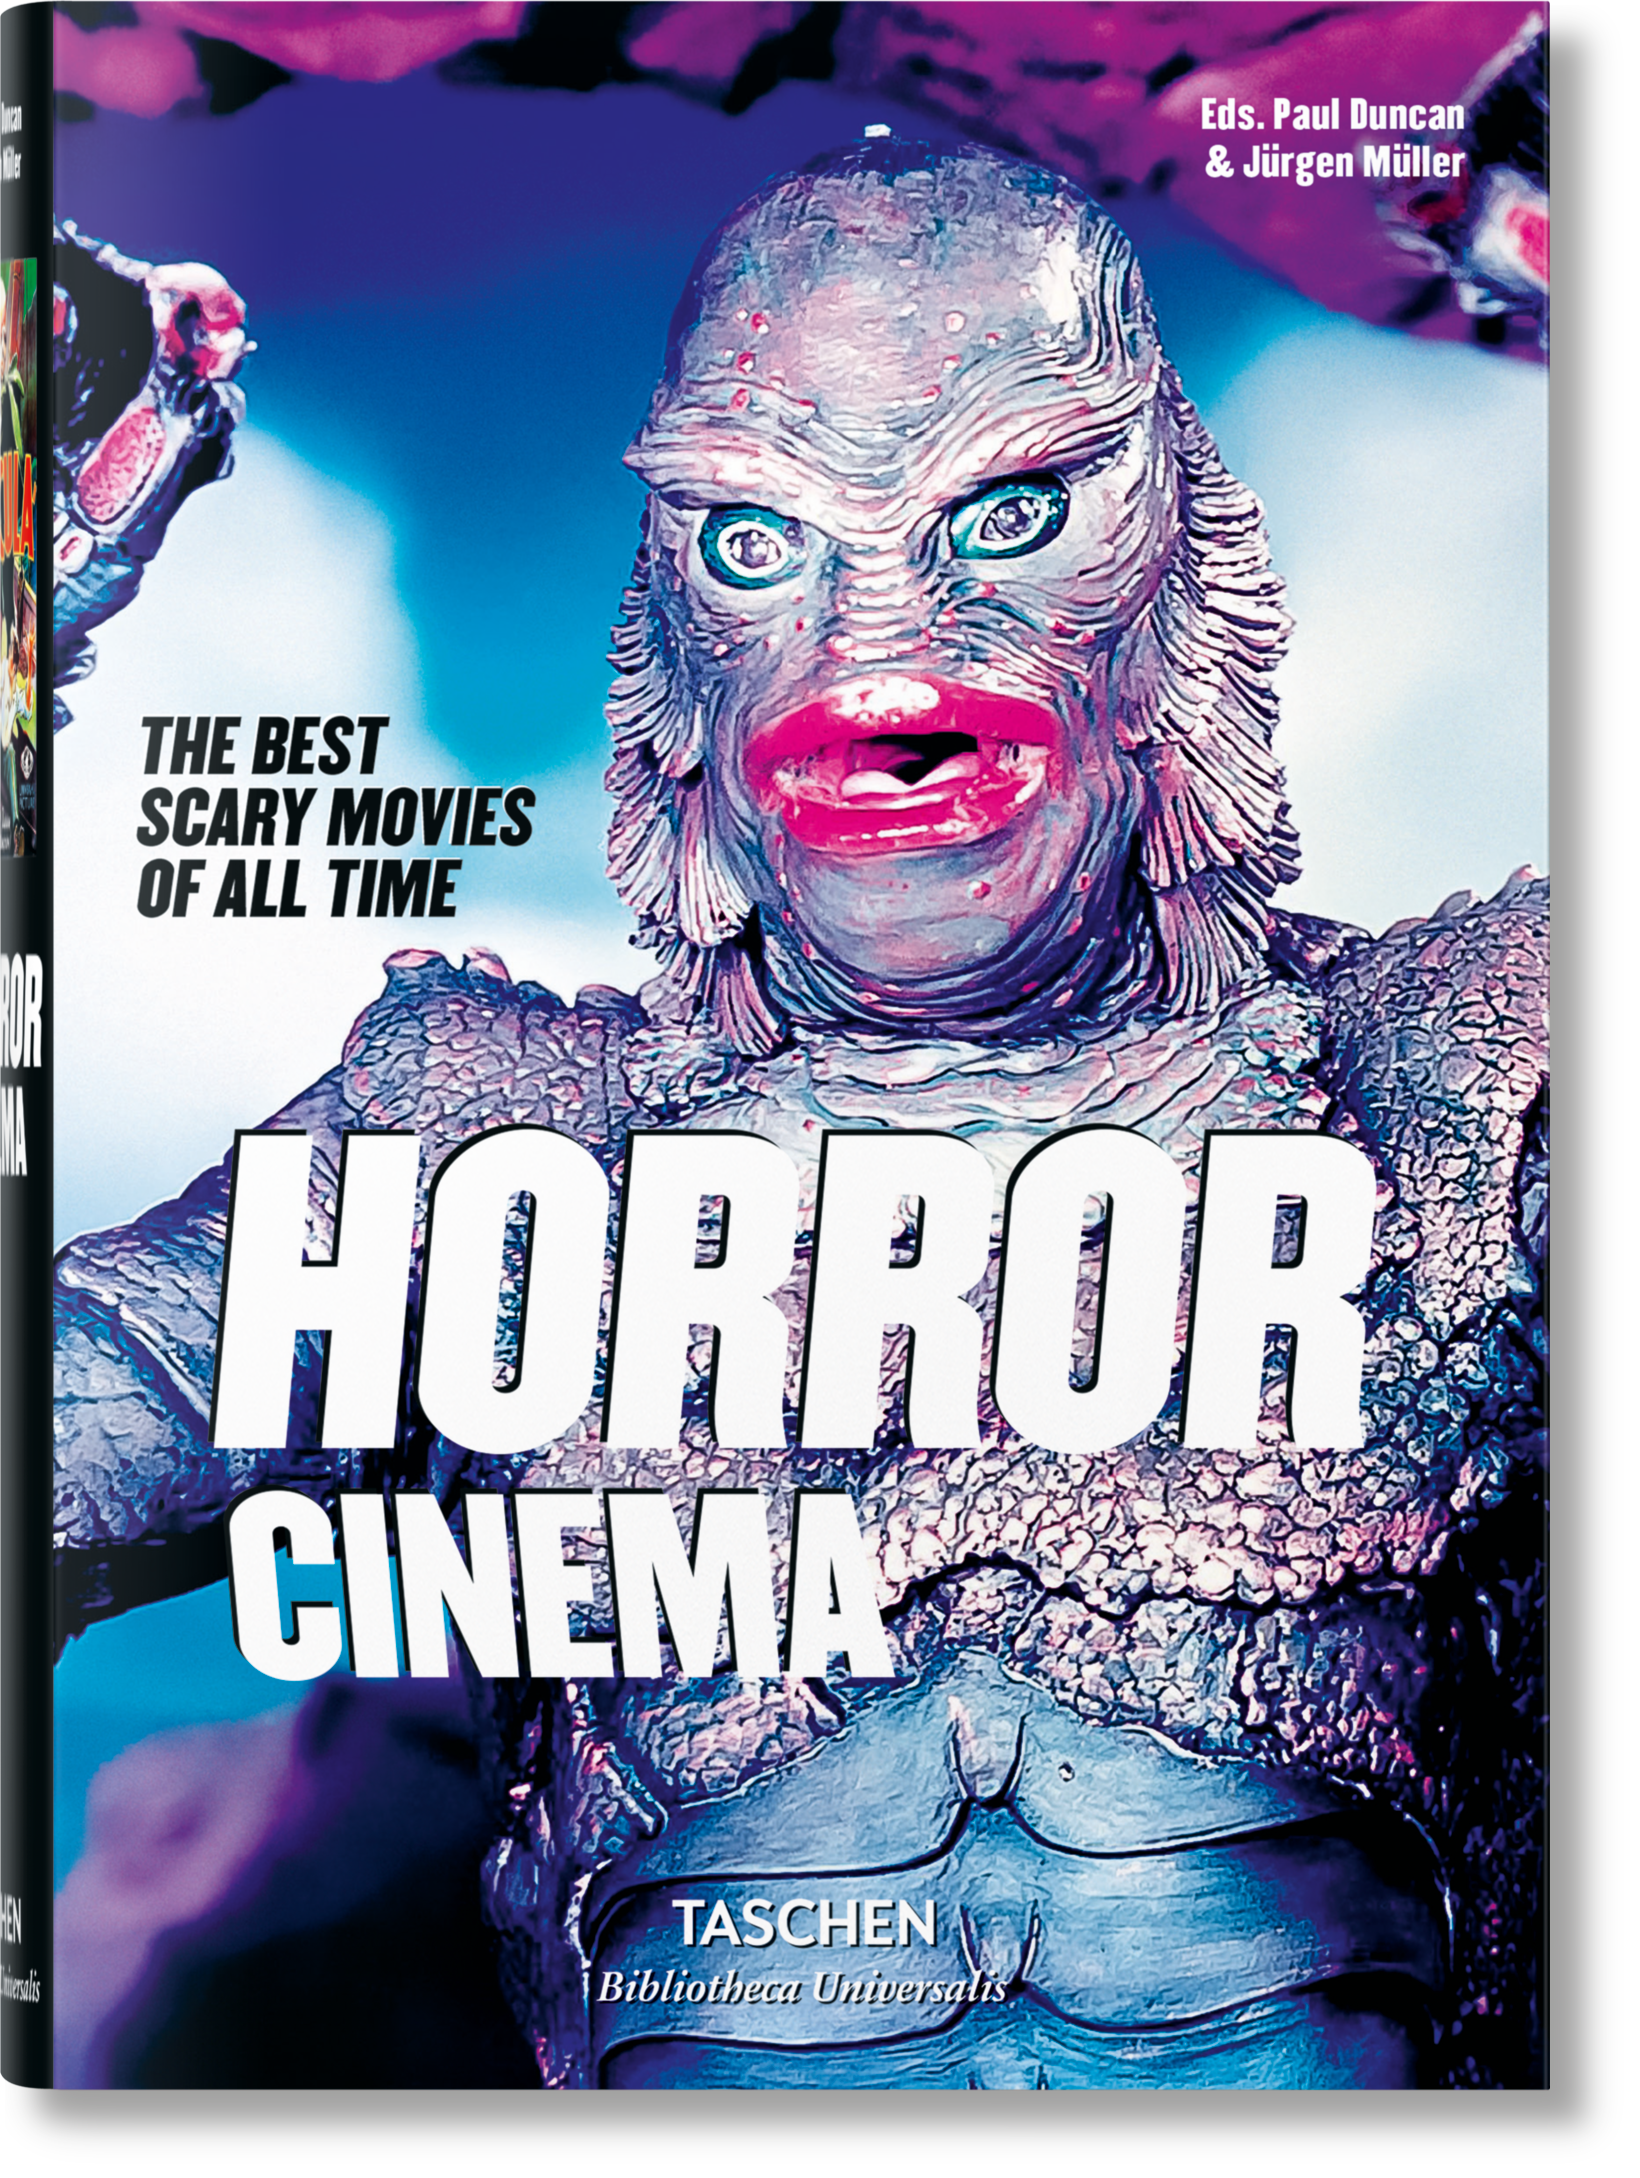 https://cdn.taschen.com/media/images/1640/horror_cinema_hc_bu_gb_3d_49346_1901241219_id_1115676.png